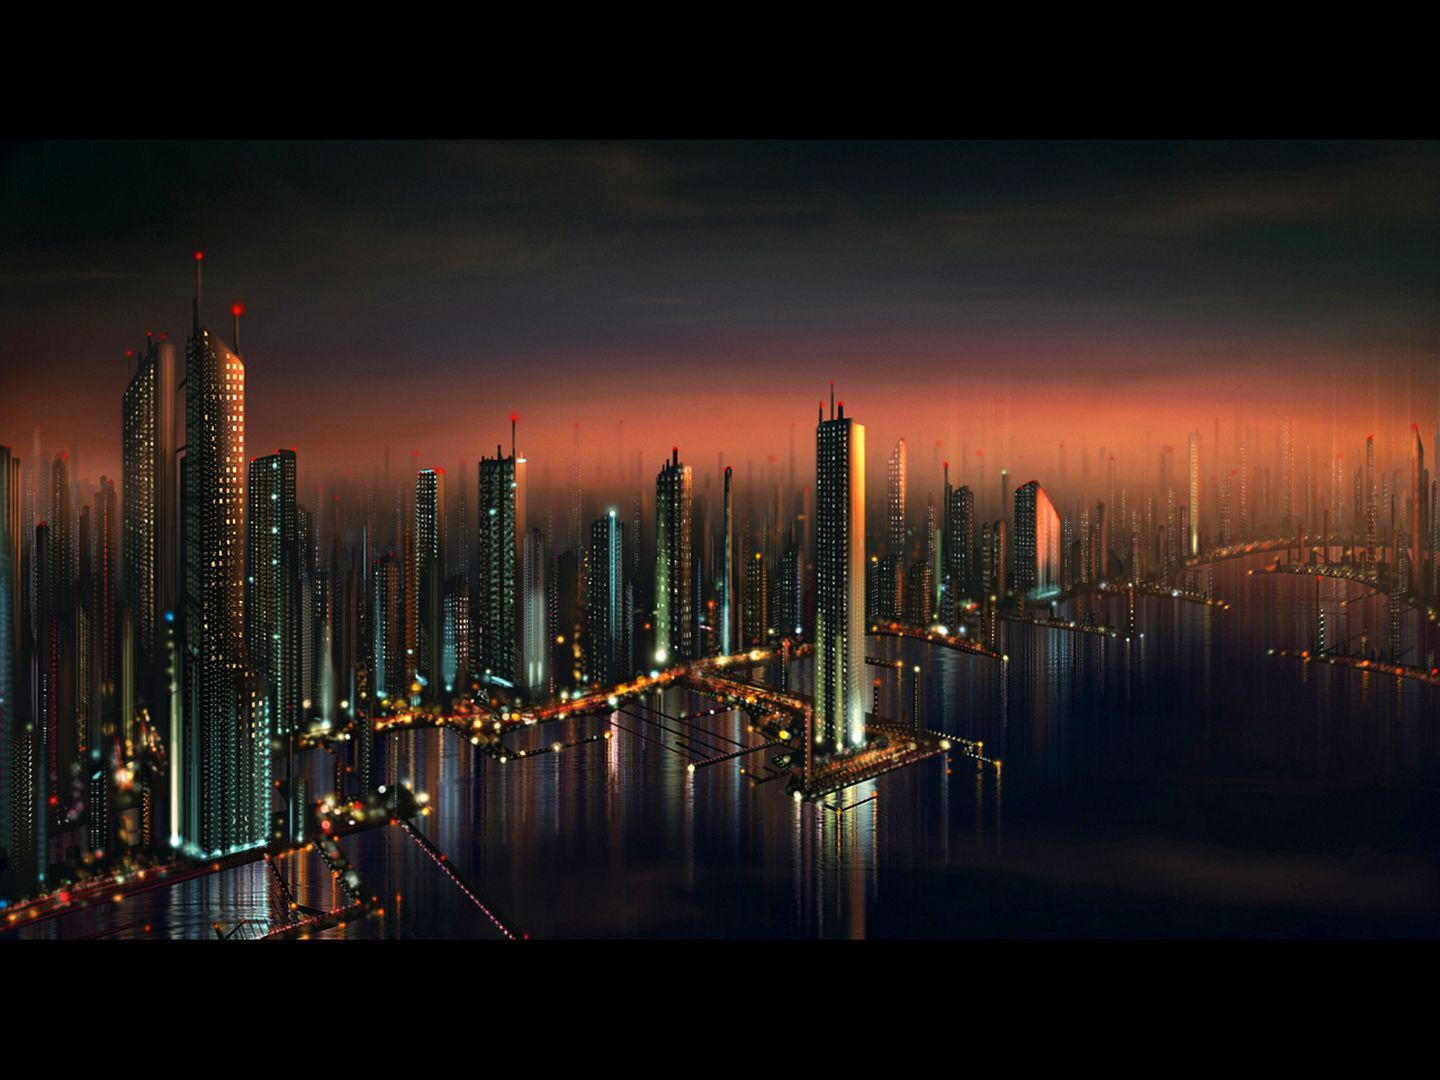 1595x797 HD Wallpapers Inbox Future Cities